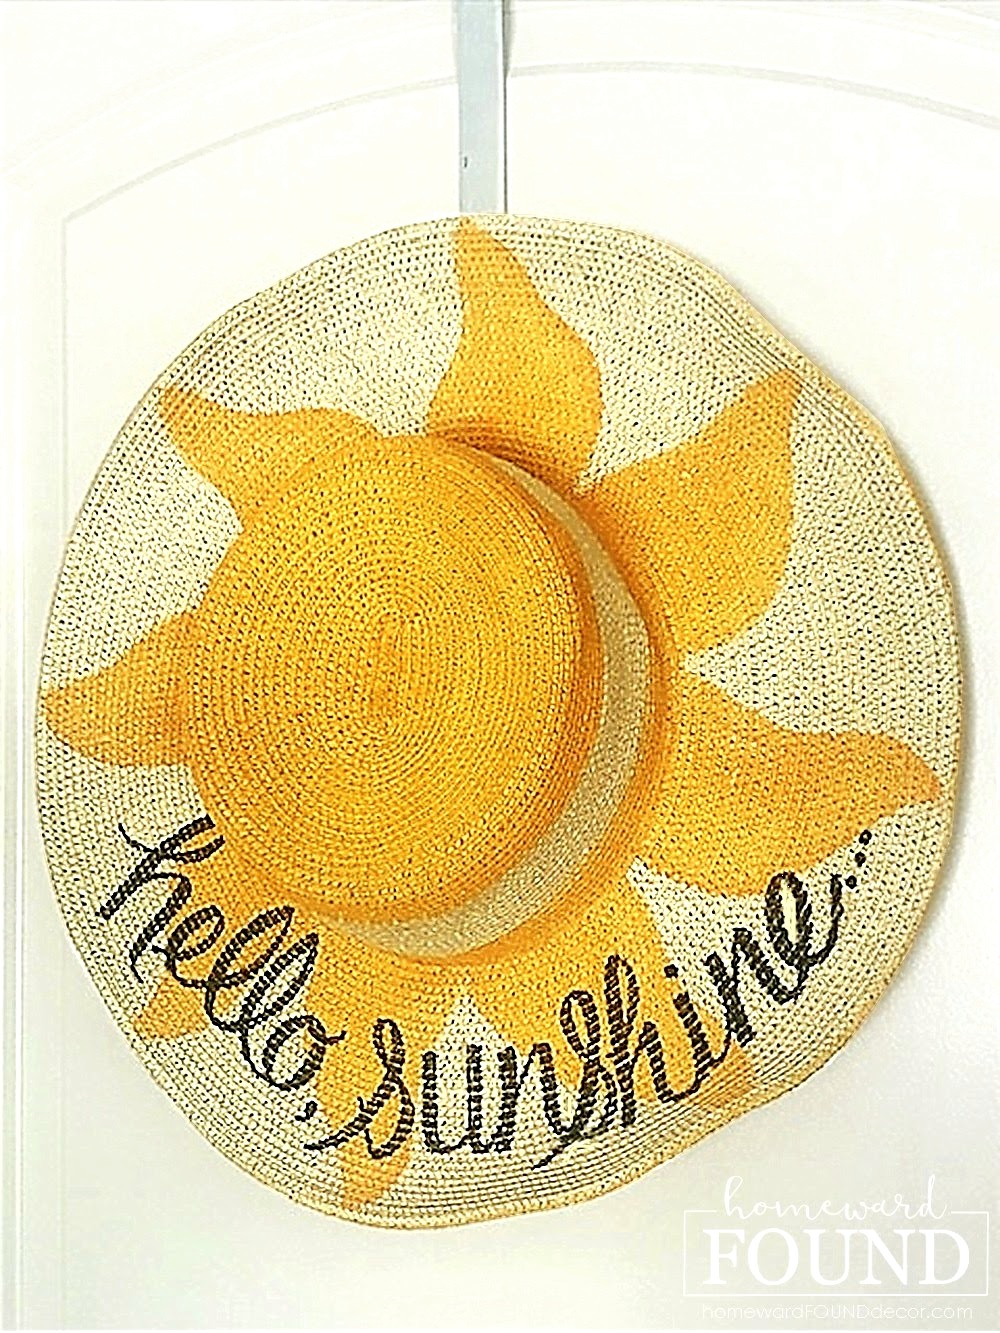 Hello Sunshine straw hat sign by Homeward Found, featured on New Upcycled Projects to Make 580 on Funky Junk!